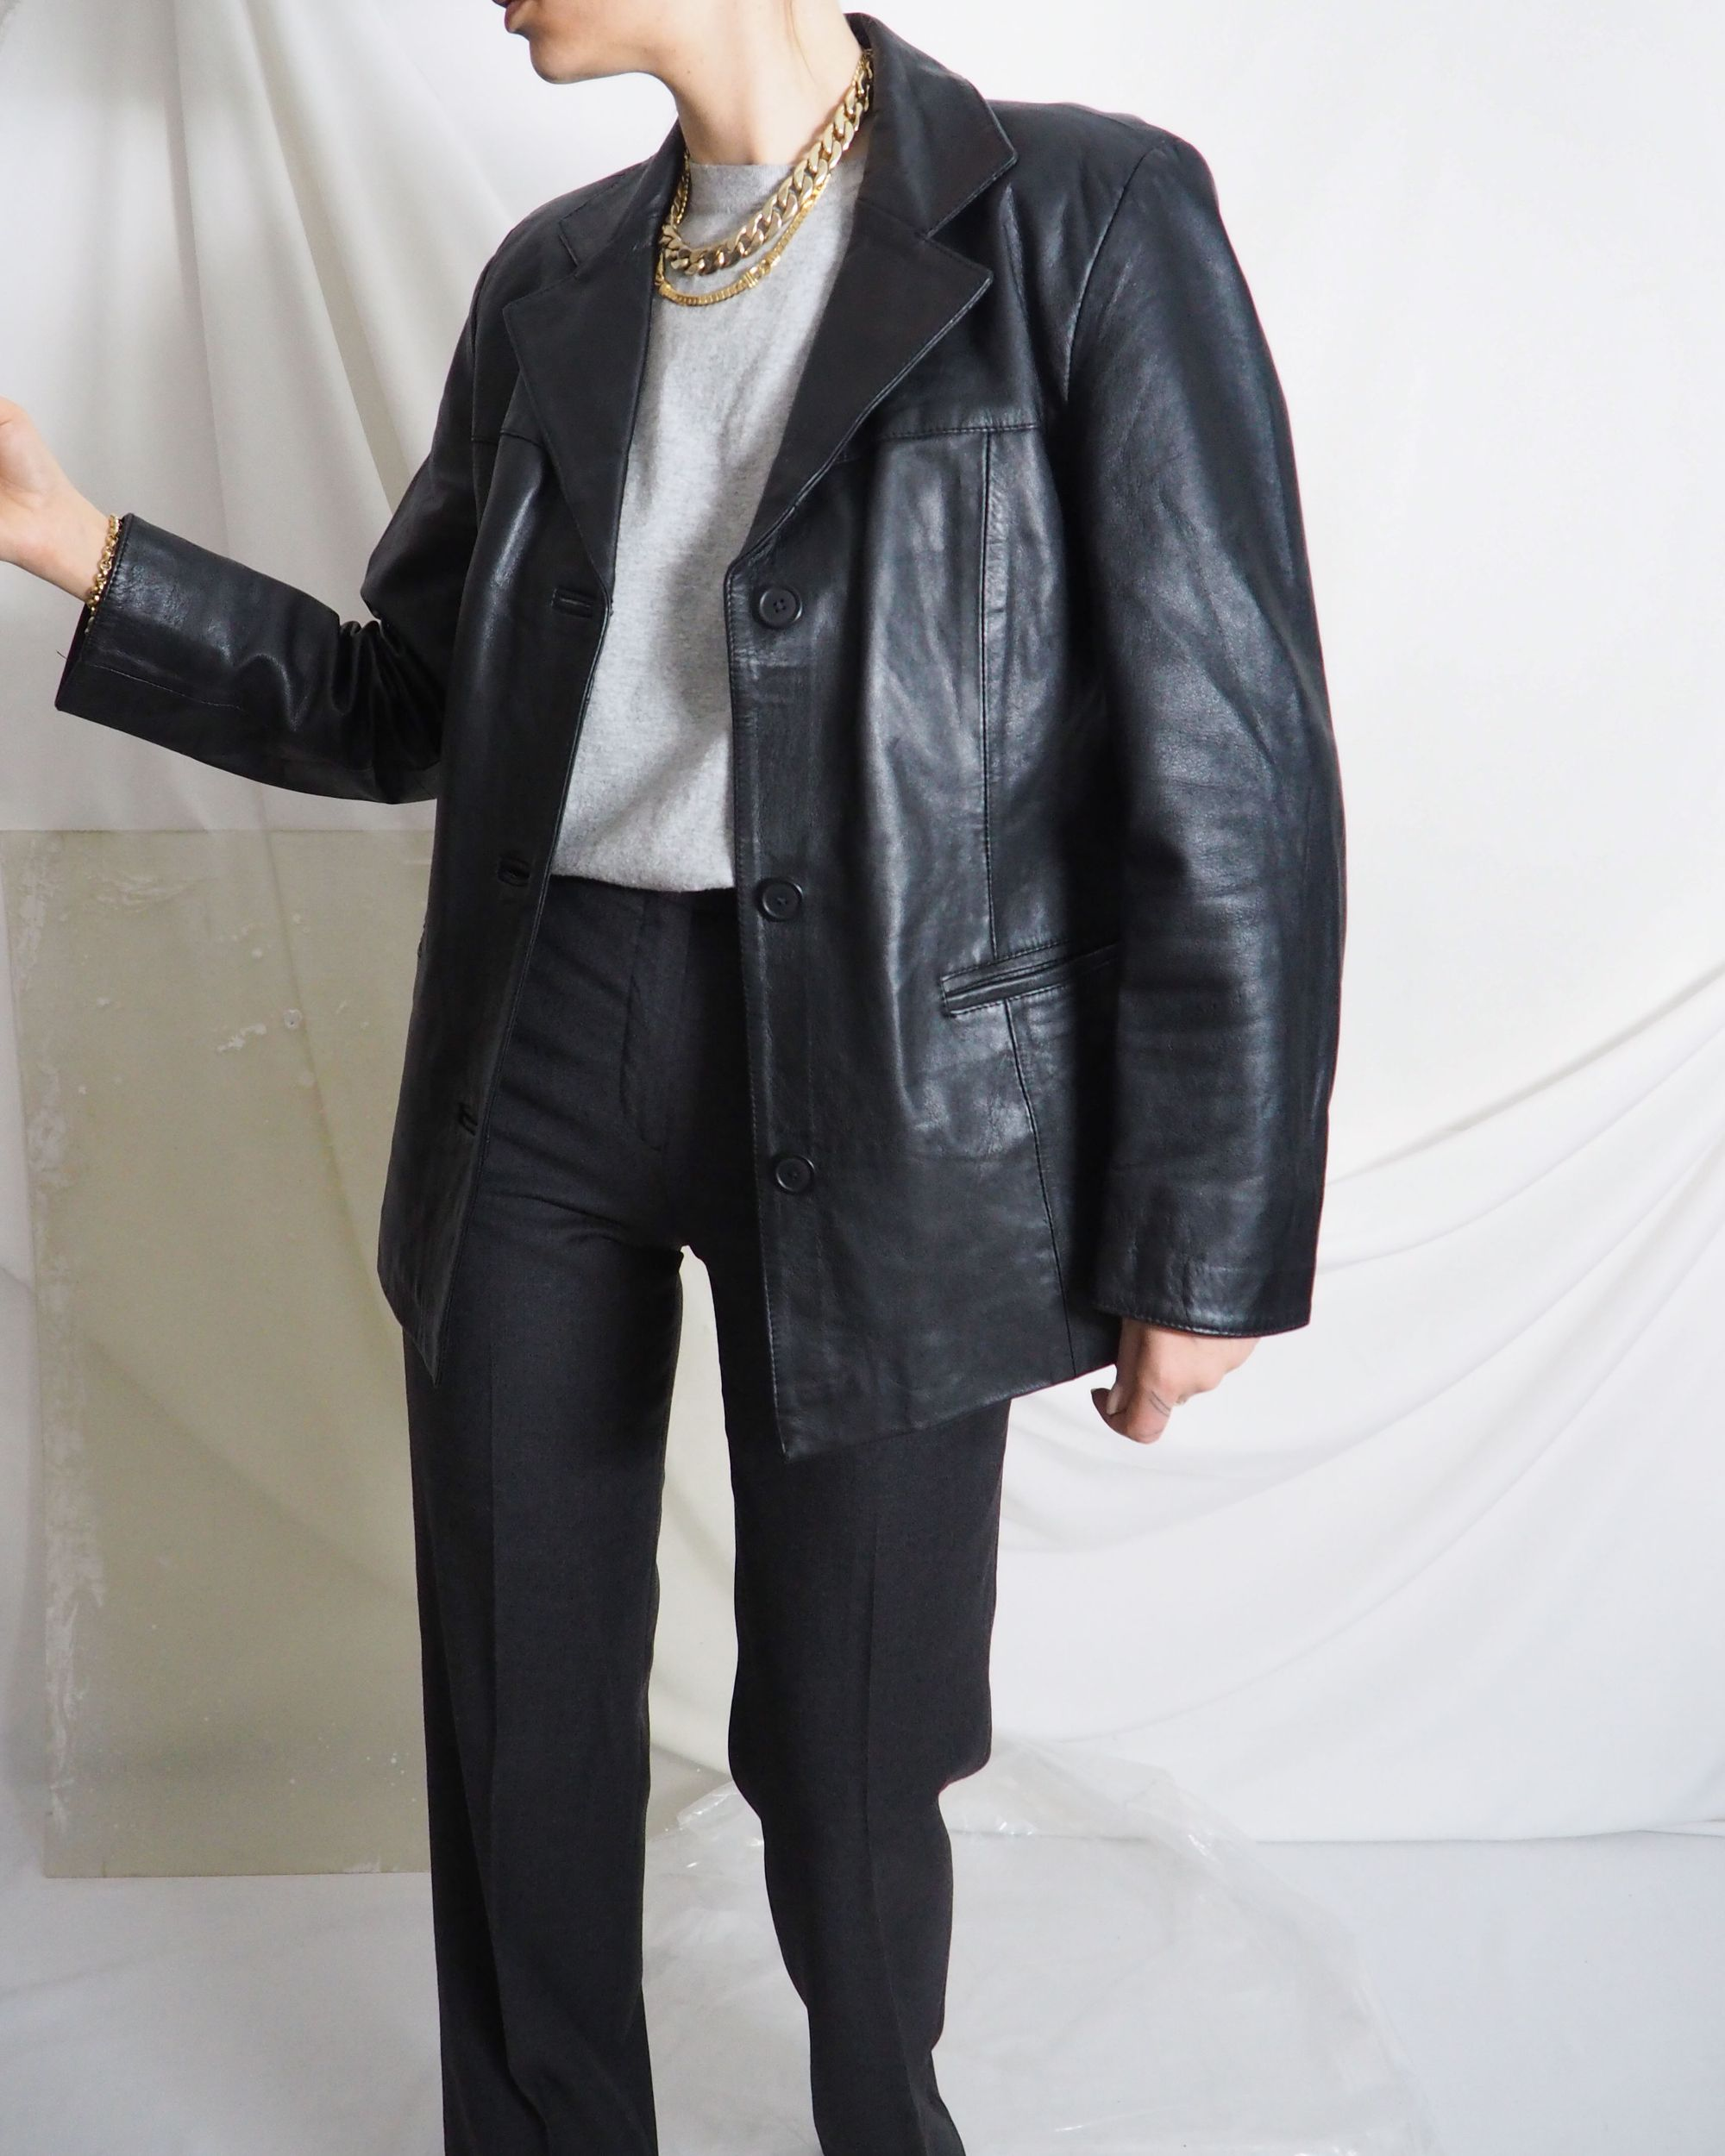 Vintage Black Leather Blazer With Gray Trousers And Gold Chain Necklace Untitled 1991 In 2020 Vintage Clothing Online Black Leather Blazer Vintage Outfits